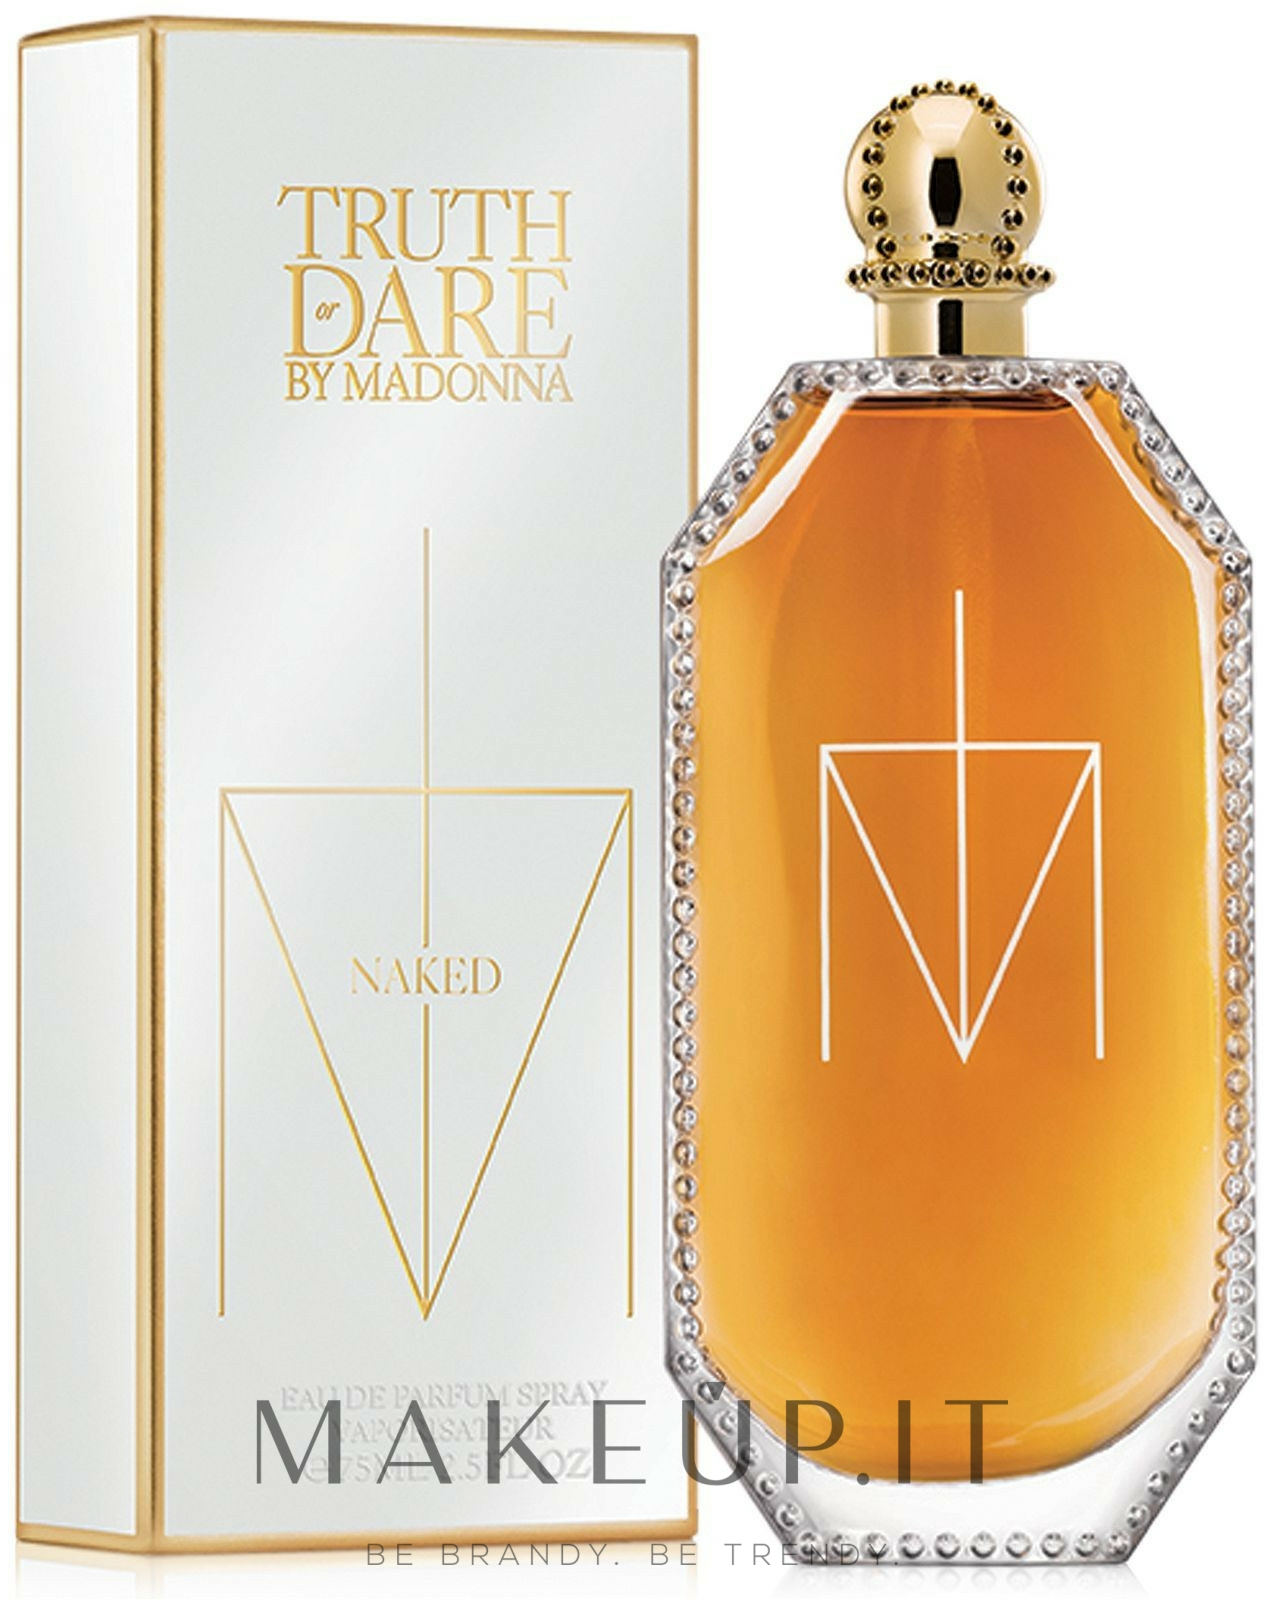 Fragrancebuy.ca — Madonna Truth or Dare Naked Woman